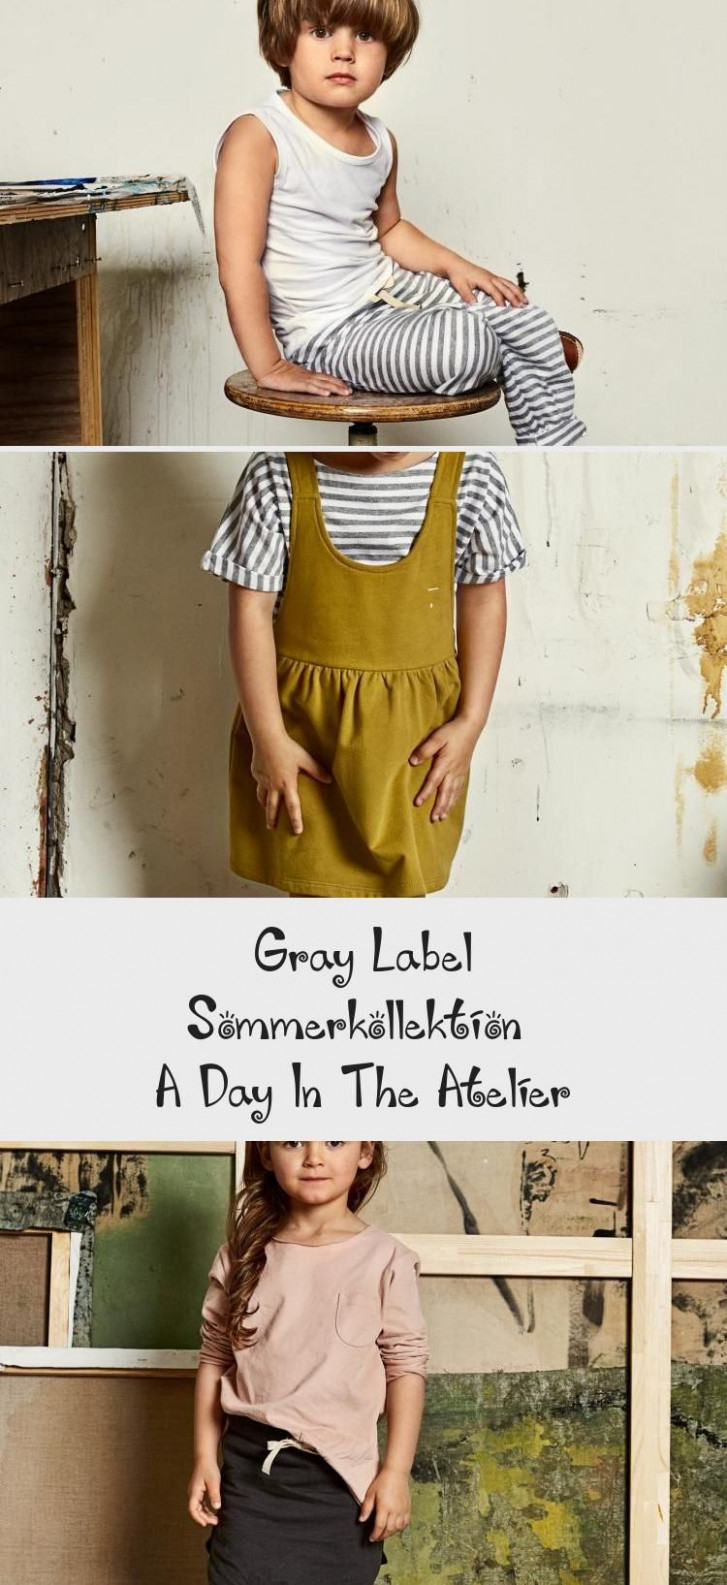 gray label sommerkollektion – a day in the atelier fashion in gots kleidung